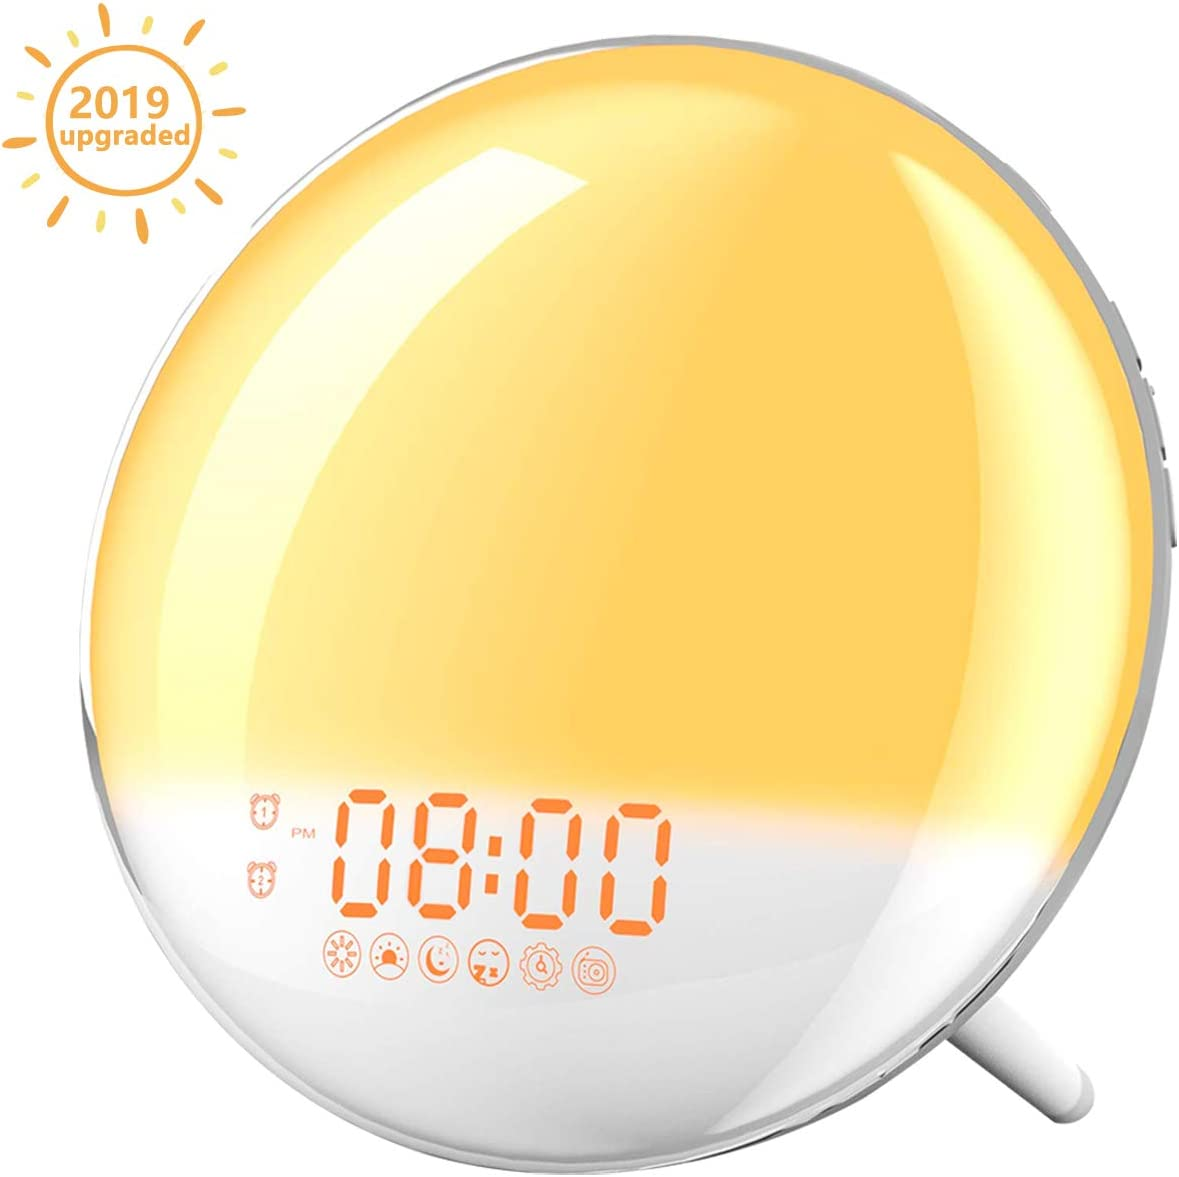 Sunrise Alarm Clock, AUSPICE Wake Up Light with FM Radio Dual Alarm 7 Nature Sounds Light Colors Snooze 20 Brightness, Sleep Aid Lamp Dawn Simulator for Kids as